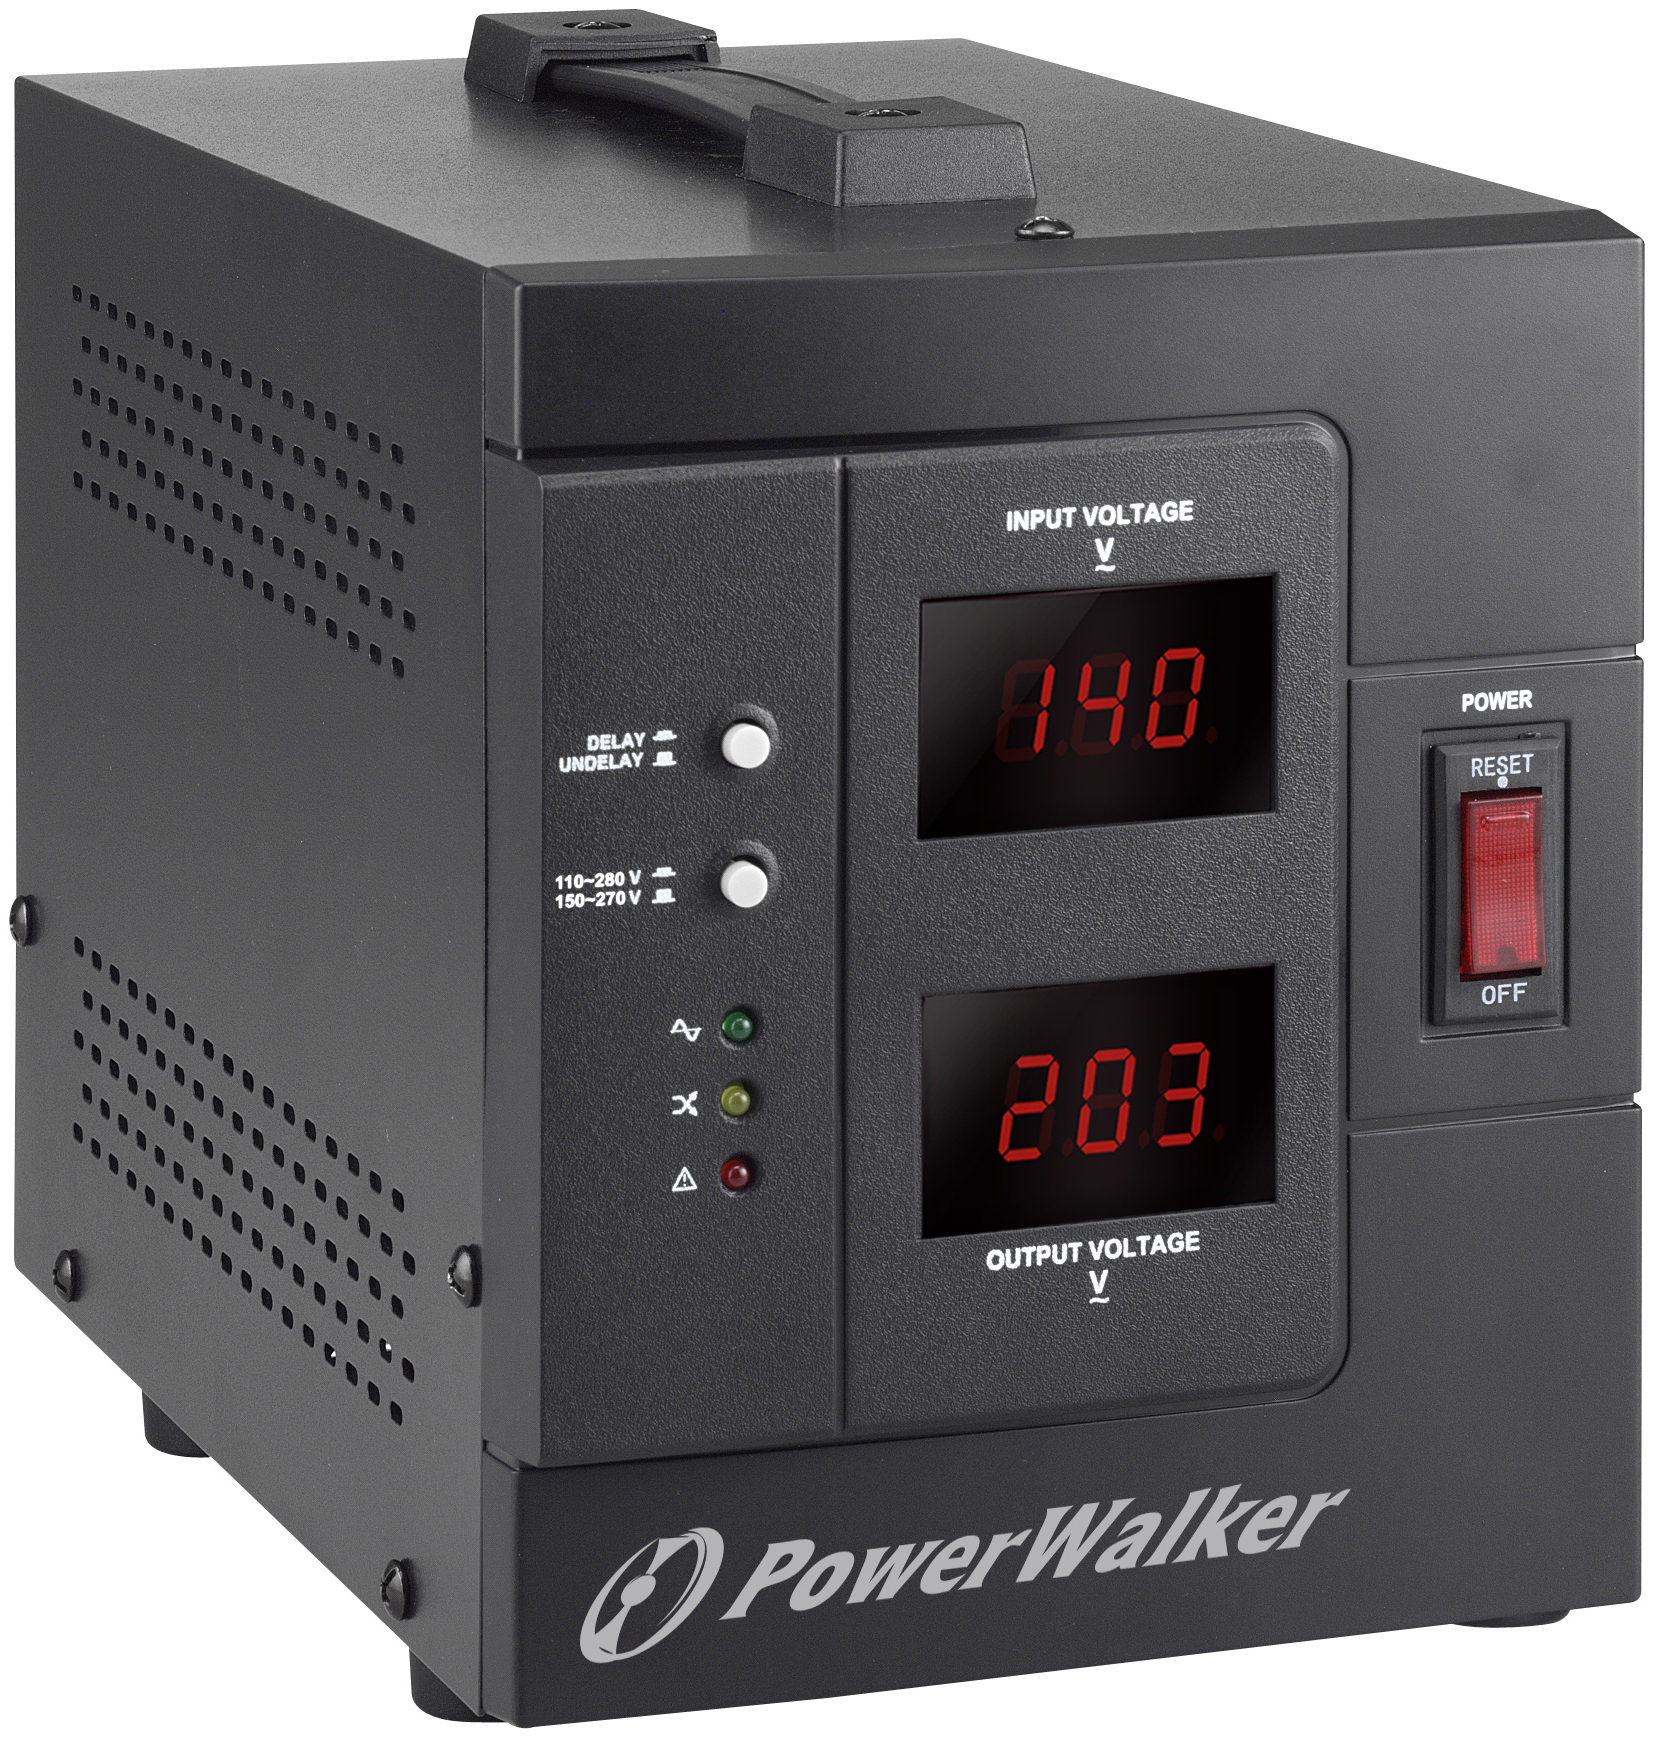 PowerWalker AVR 2000/SIV voltage regulator 230 V 2 AC outlet(s) Black